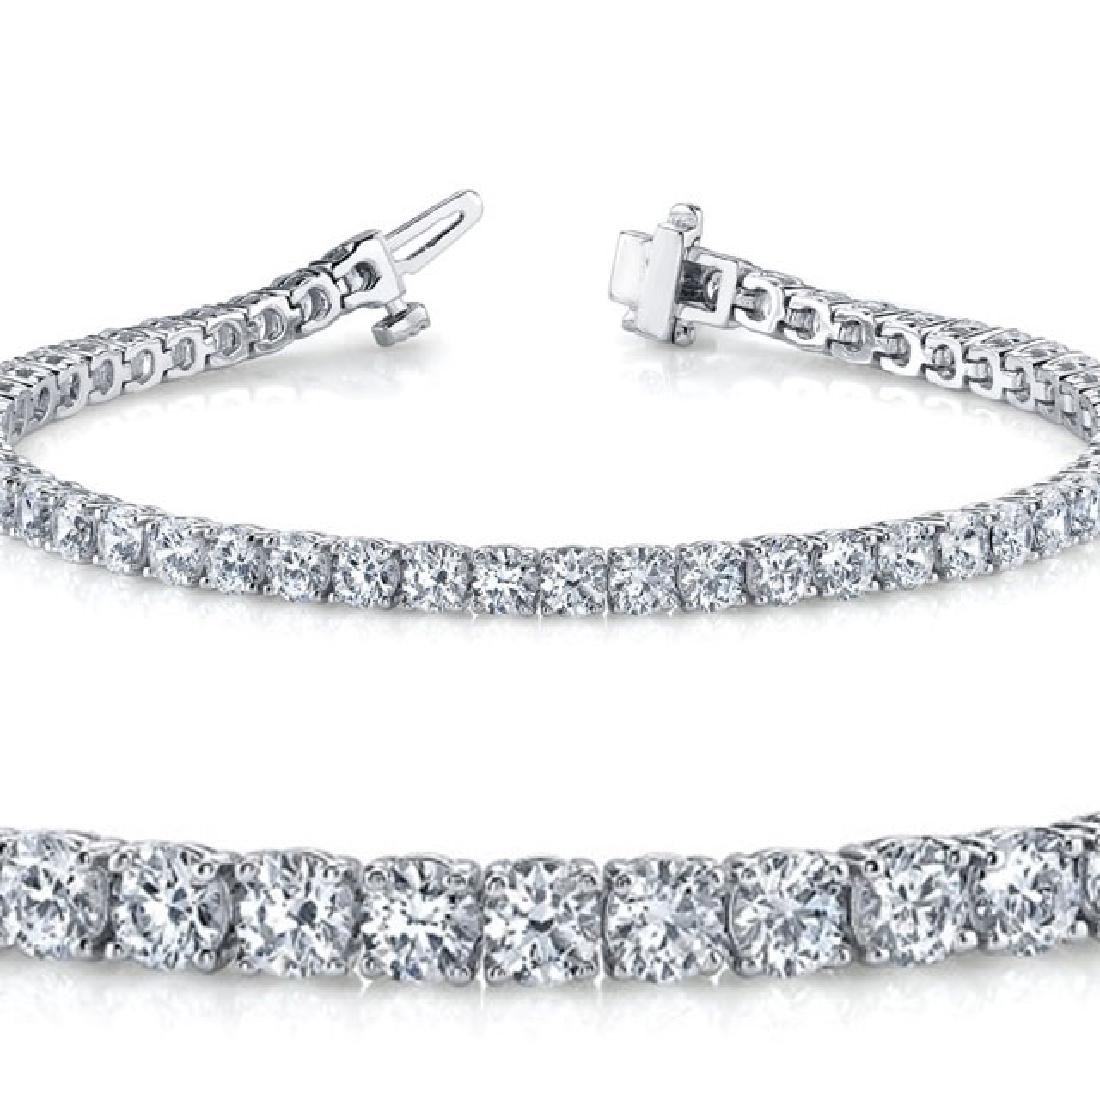 Natural 4ct VS-SI Diamond Tennis Bracelet Platinum -